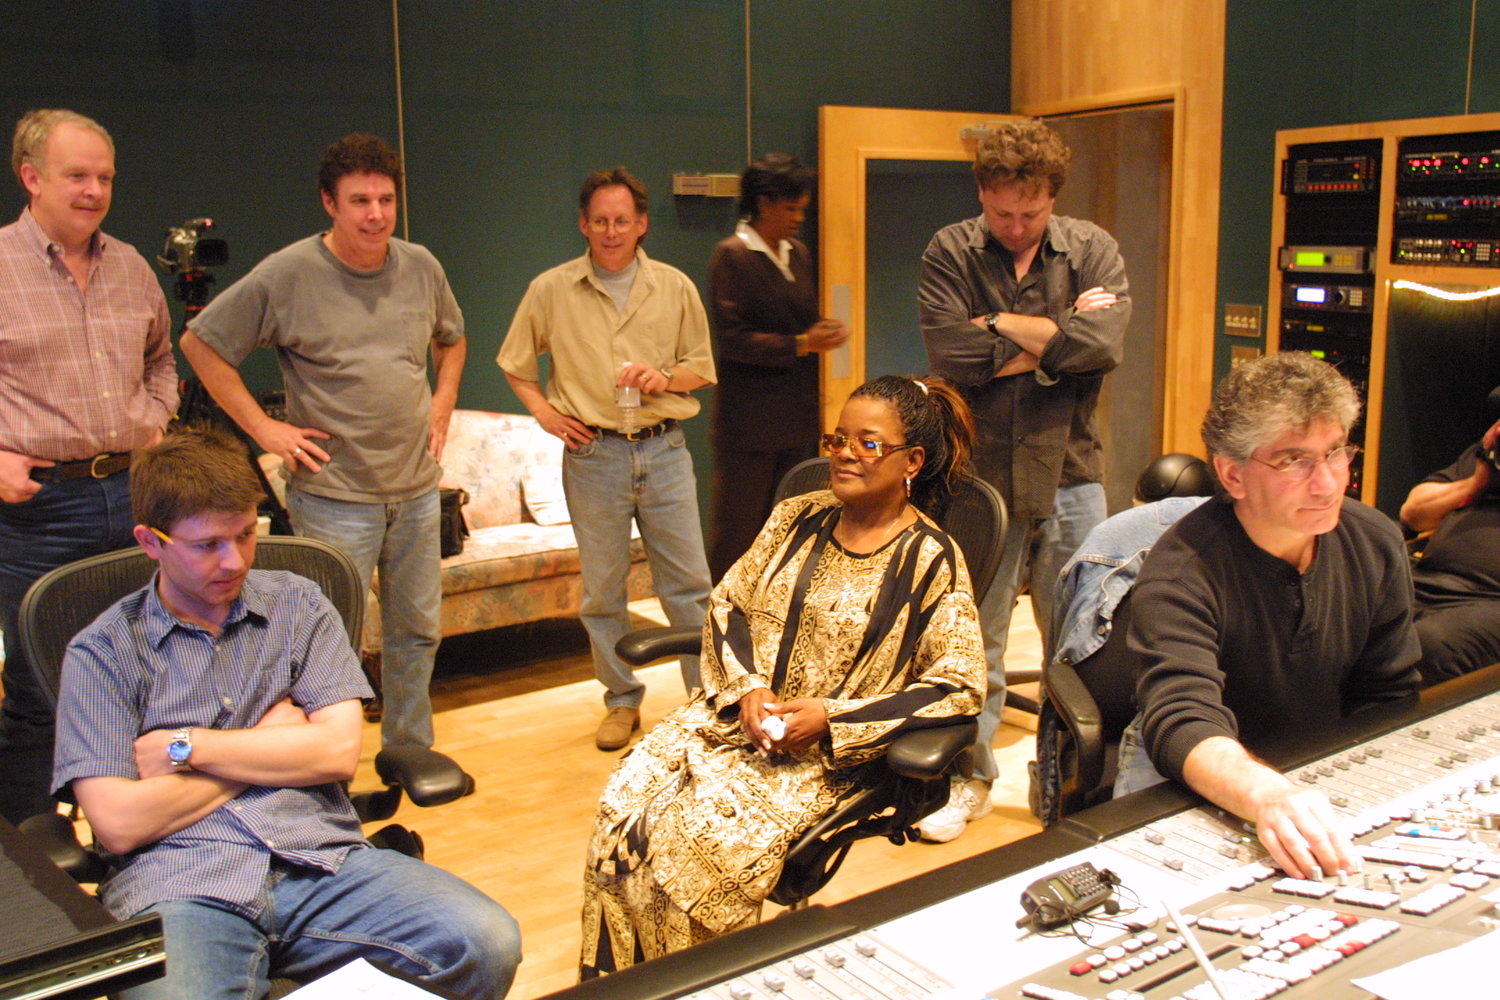 """Jeff Gaskill (standing, arms folded) listening to playback of recording by Shirley Caesar (seated, center) of remake of """"Gotta Serve Somebody"""""""